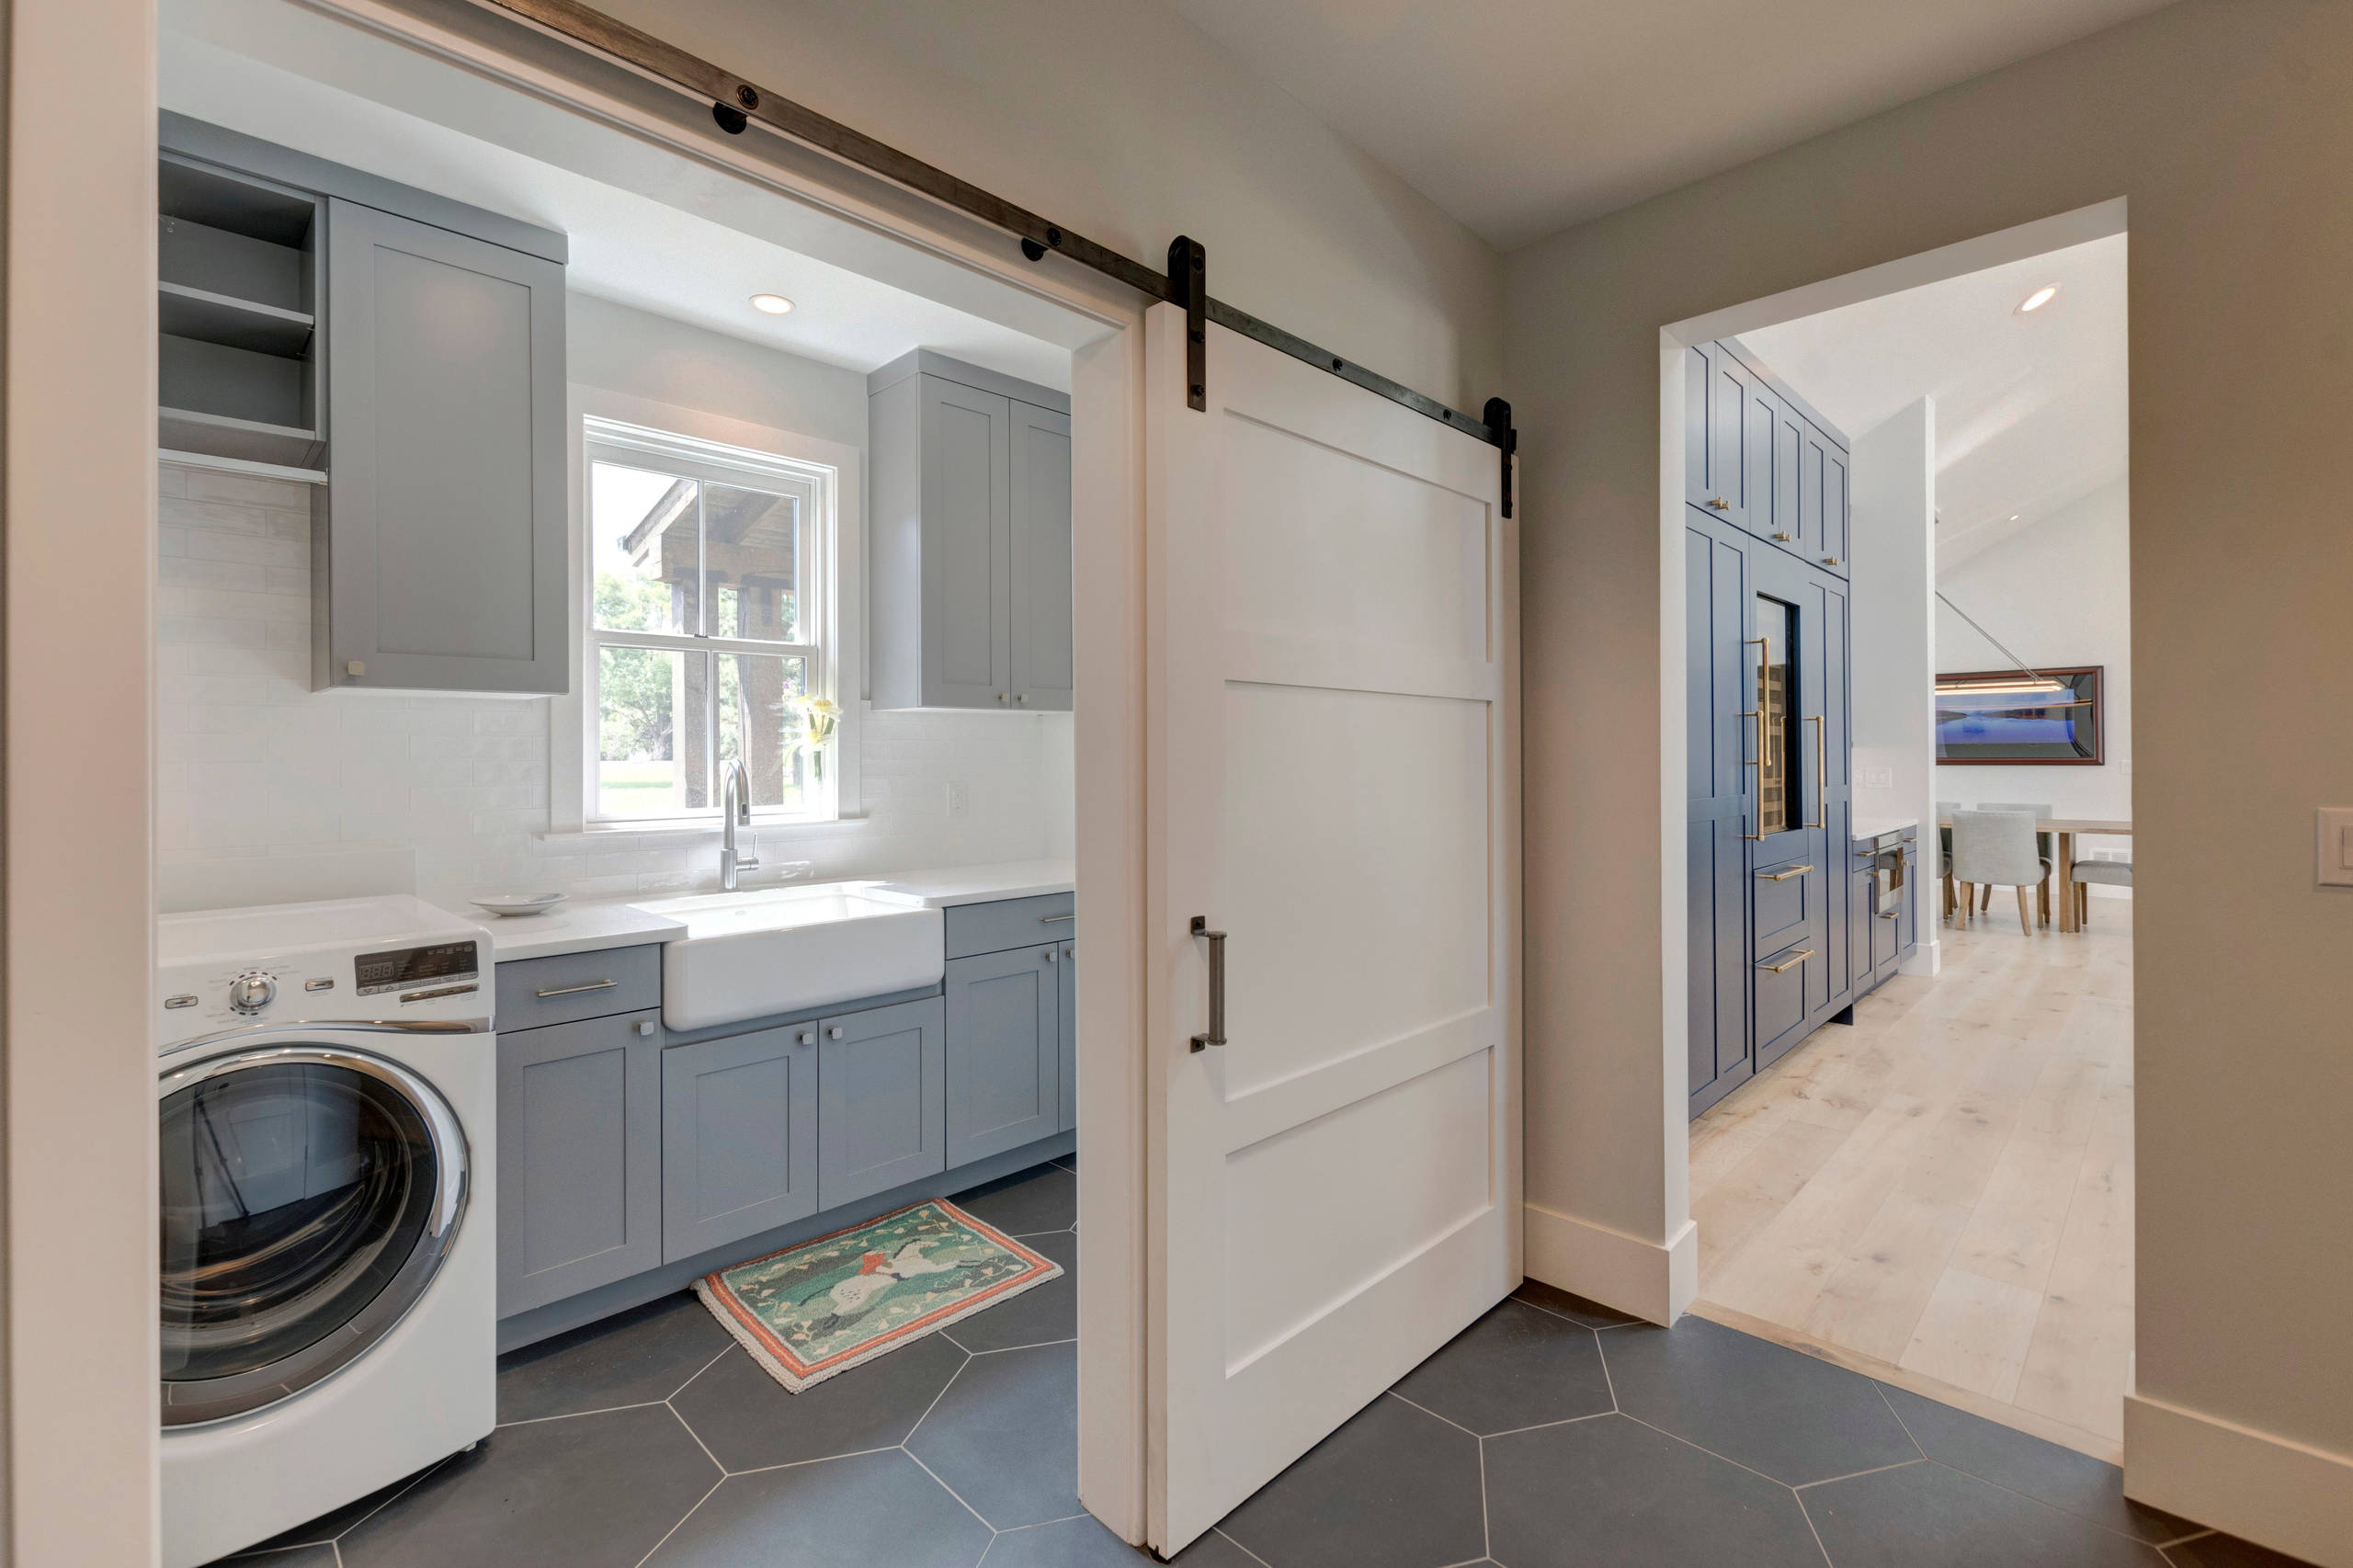 75 Beautiful Farmhouse Laundry Room Pictures Ideas December 2020 Houzz